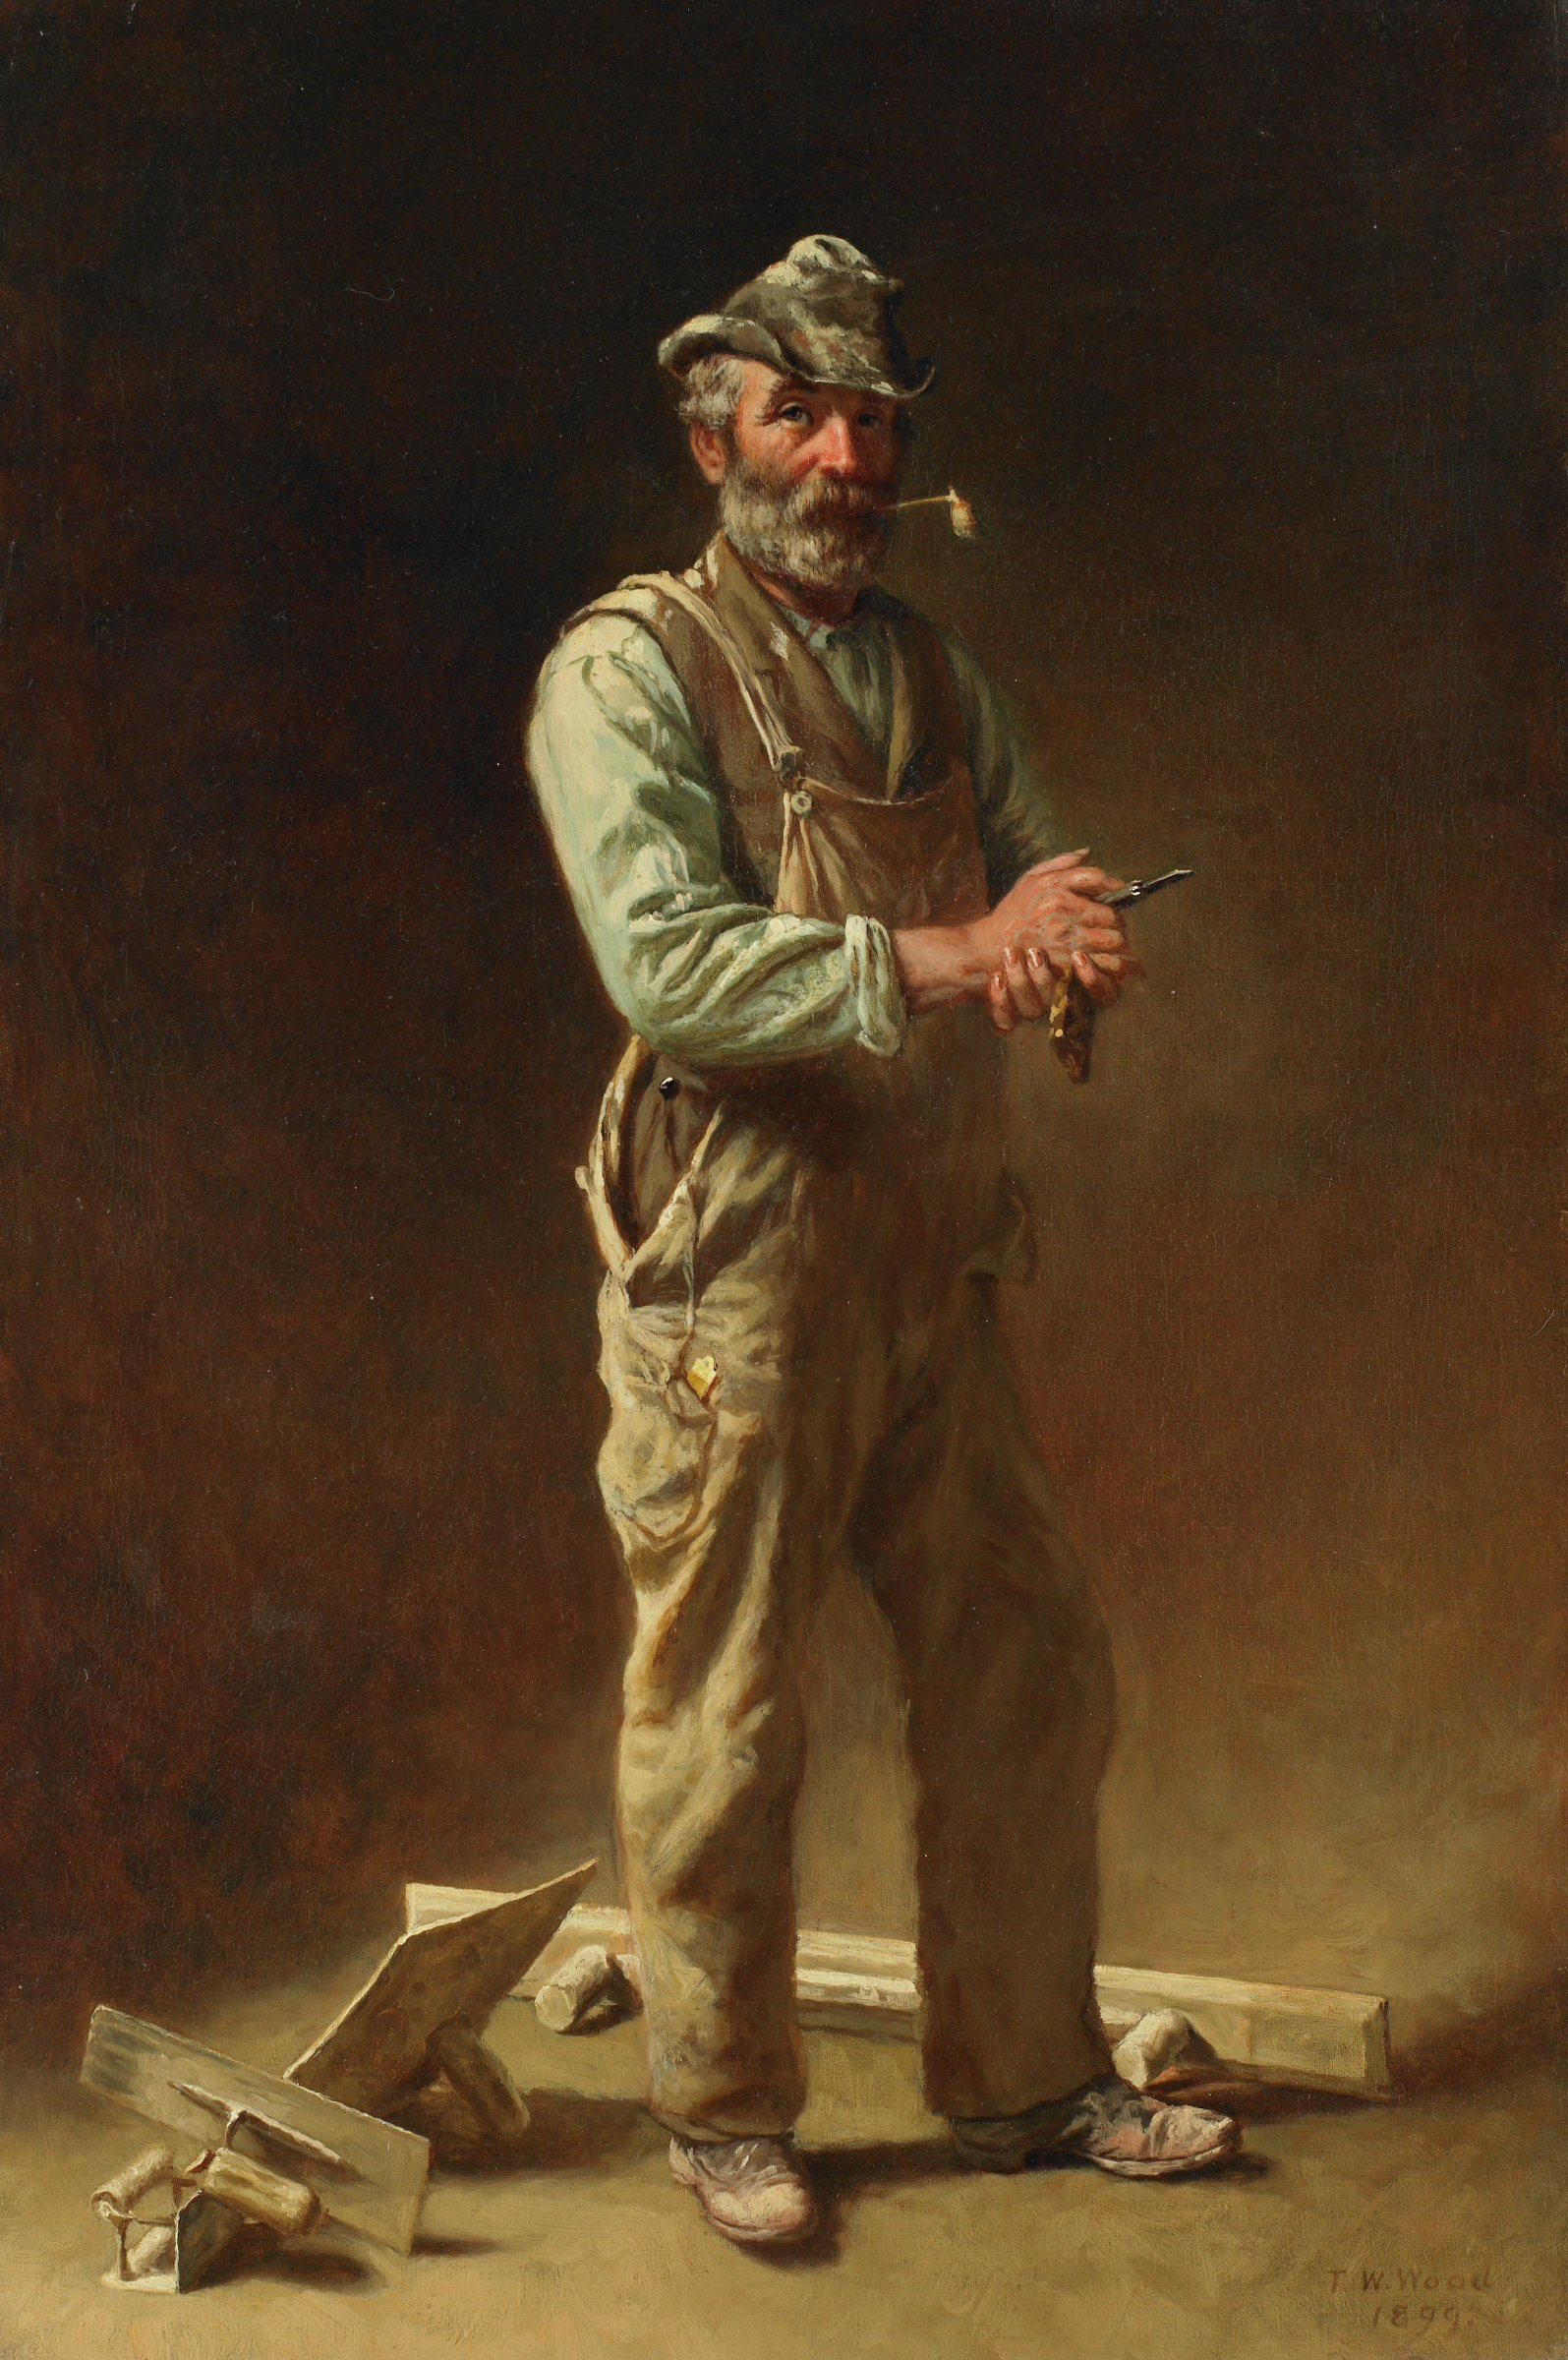 Now for a Good Smoke, Thomas Waterman Wood, oil on canvas